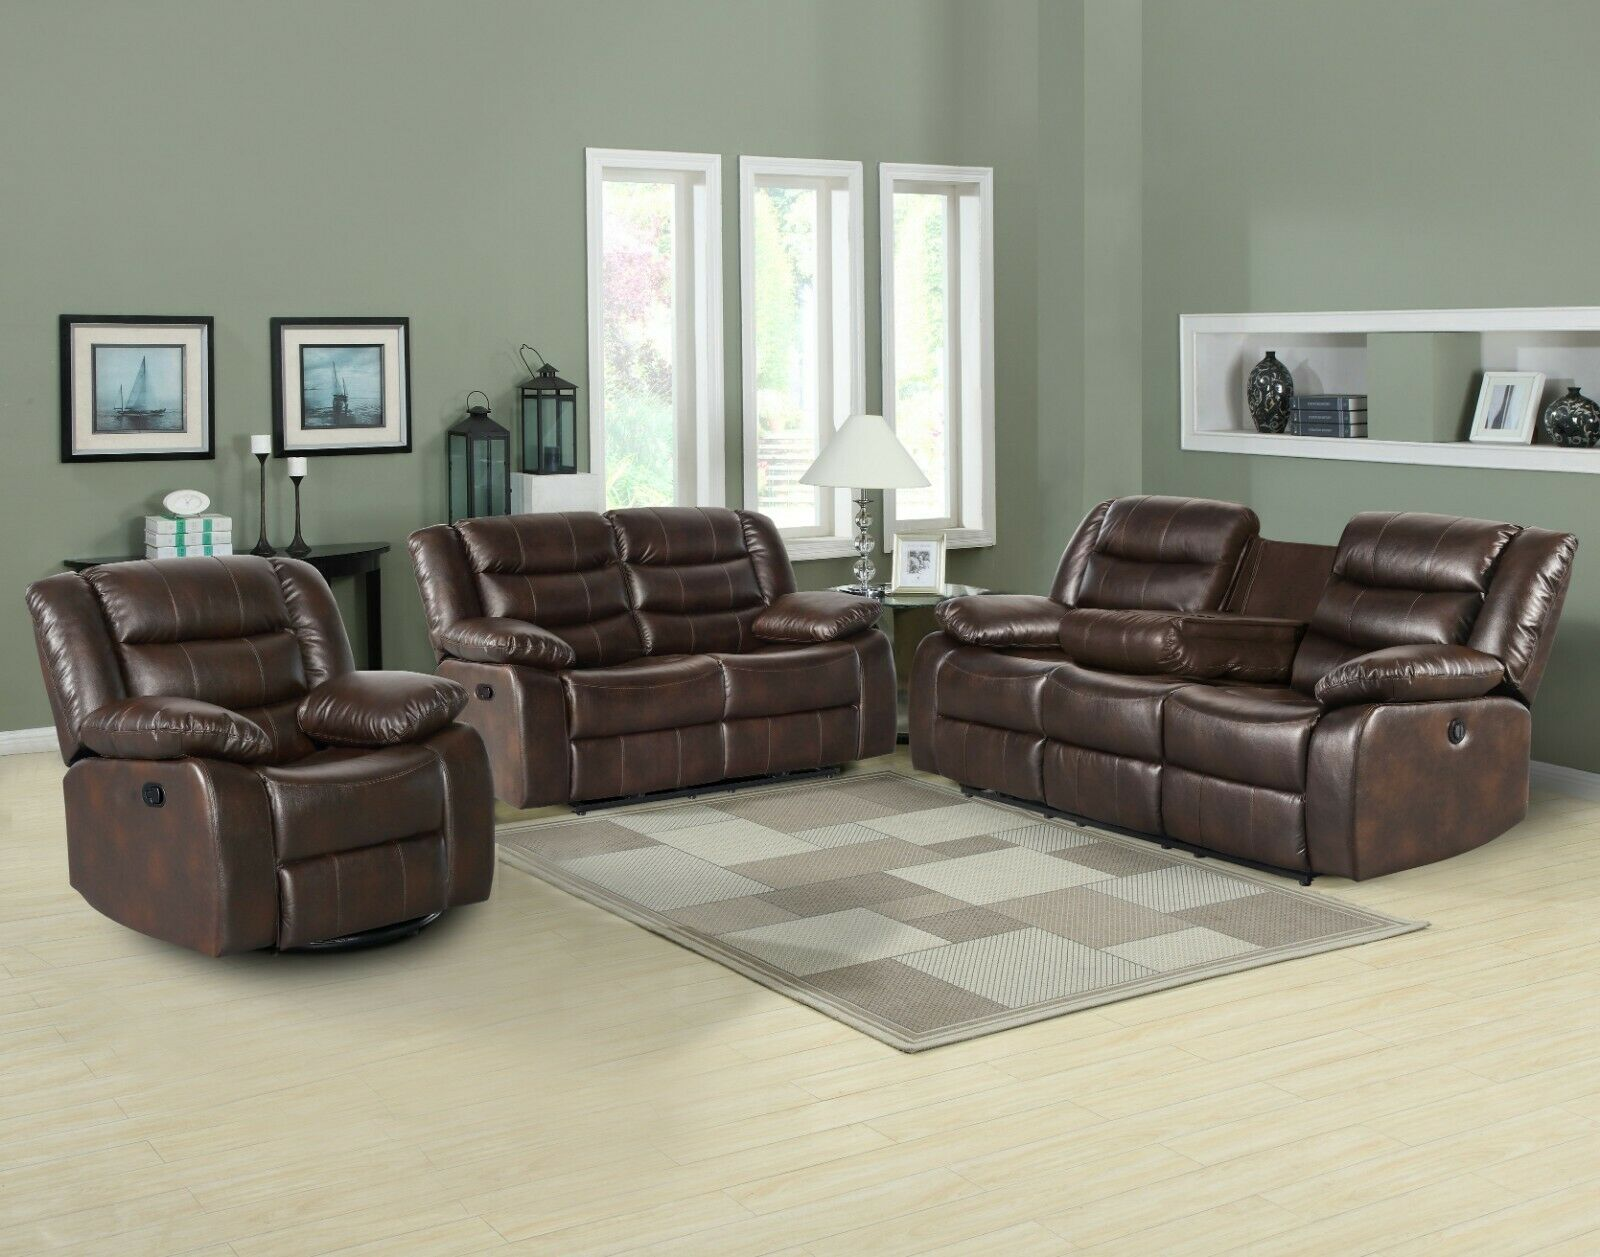 - Bernhardt Traditional Brown Leather Sofa & Chair Set For Sale